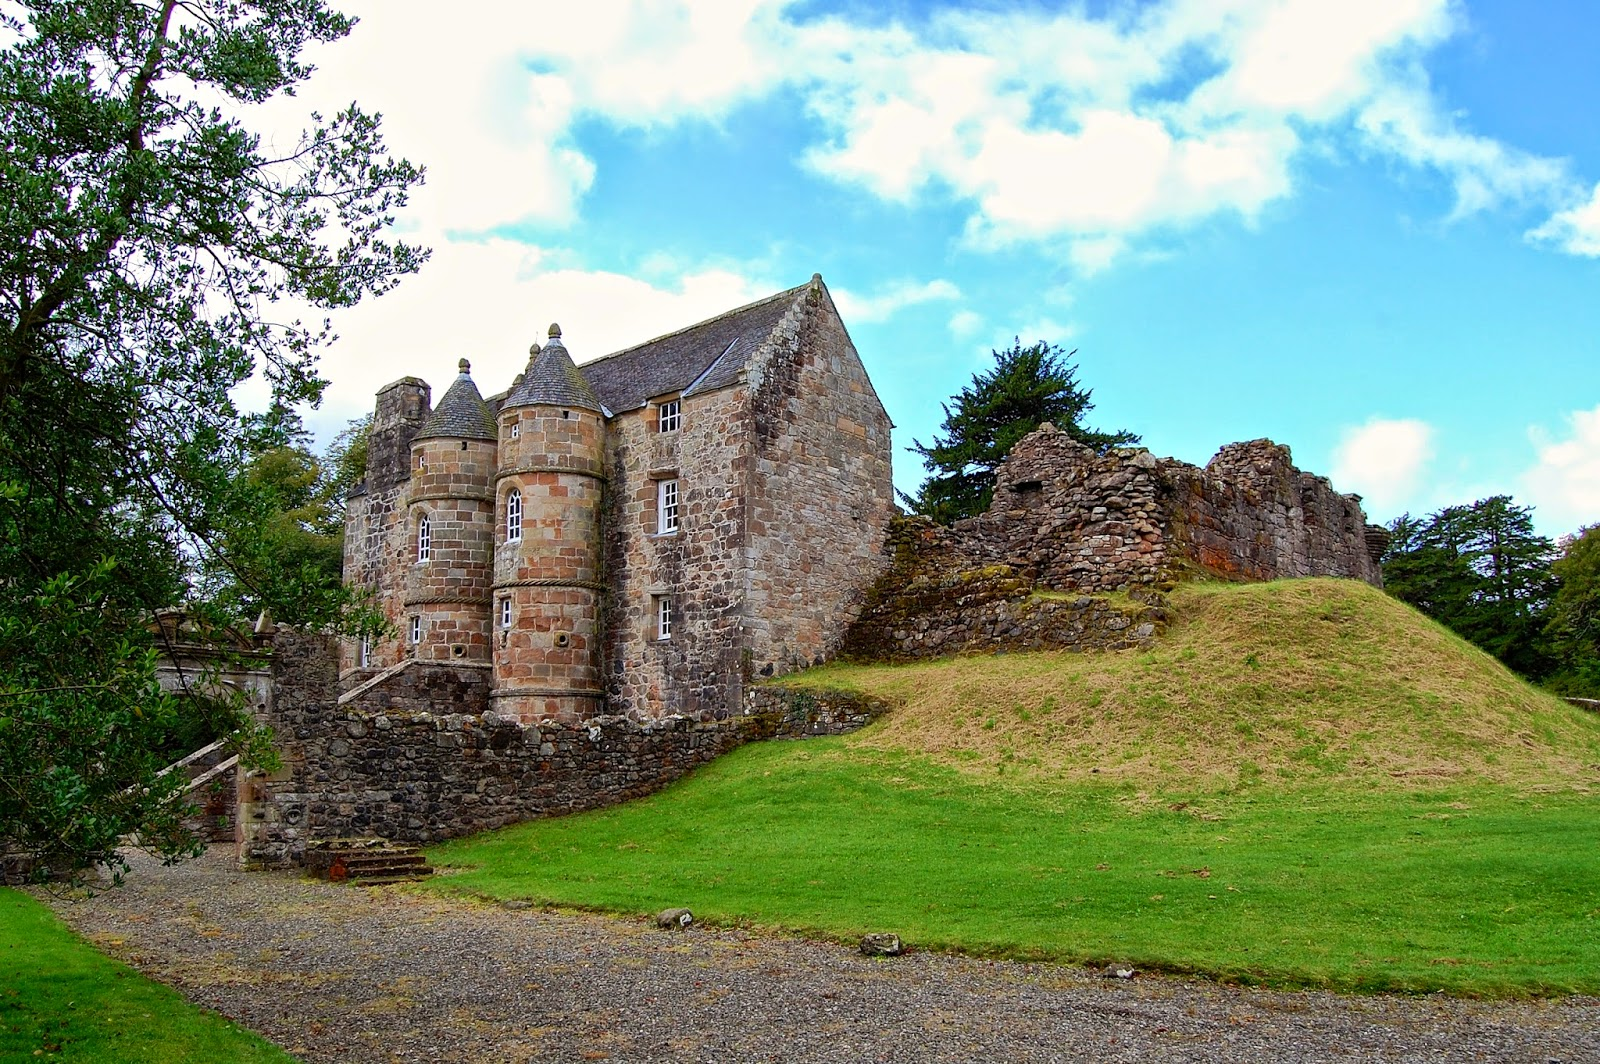 Rowallan Castle with attached ruined keep